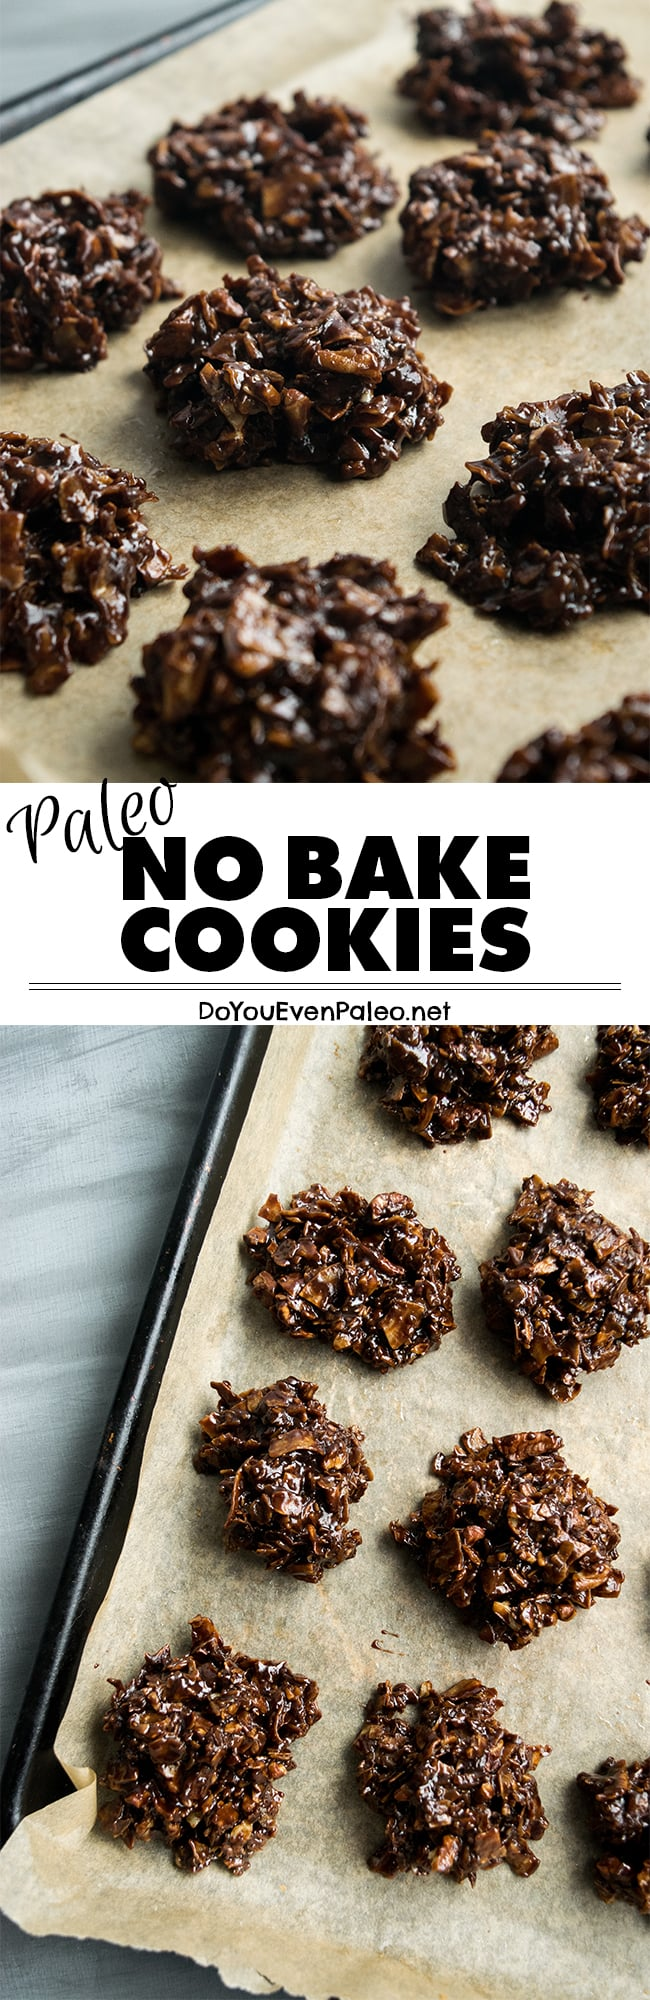 Paleo No Bake Cookies - my healthy version of these classic cookies are made entirely on the stovetop using coconut, nuts, ghee, coconut sugar, and cocoa. Chocolatey, simple, gluten free, vegetarian, and clean eating friendly! | DoYouEvenPaleo.net #paleo #glutenfree #doyouevenpaleo